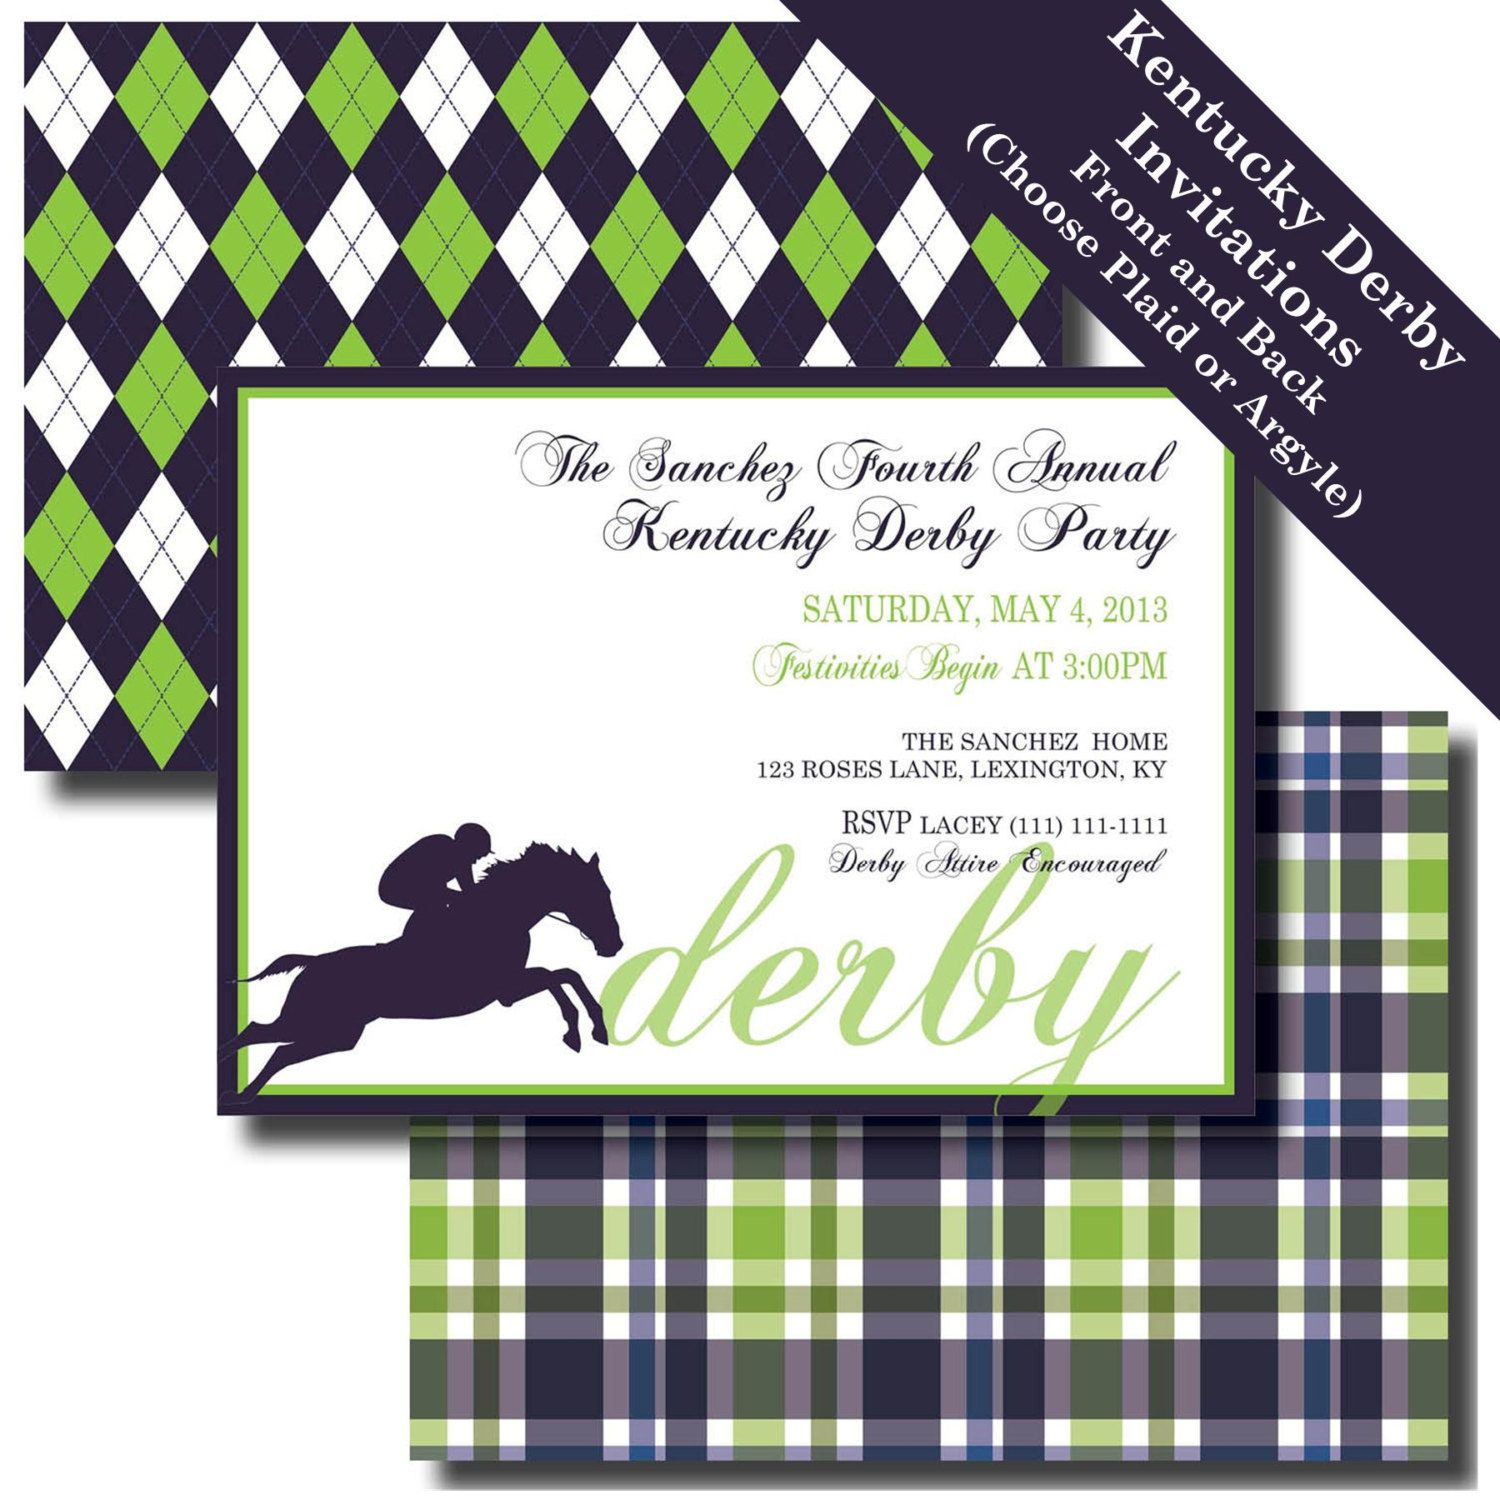 KENTUCKY DERBY Party Printable INVITATIONS and Party Decorations – Derby Party Invitations